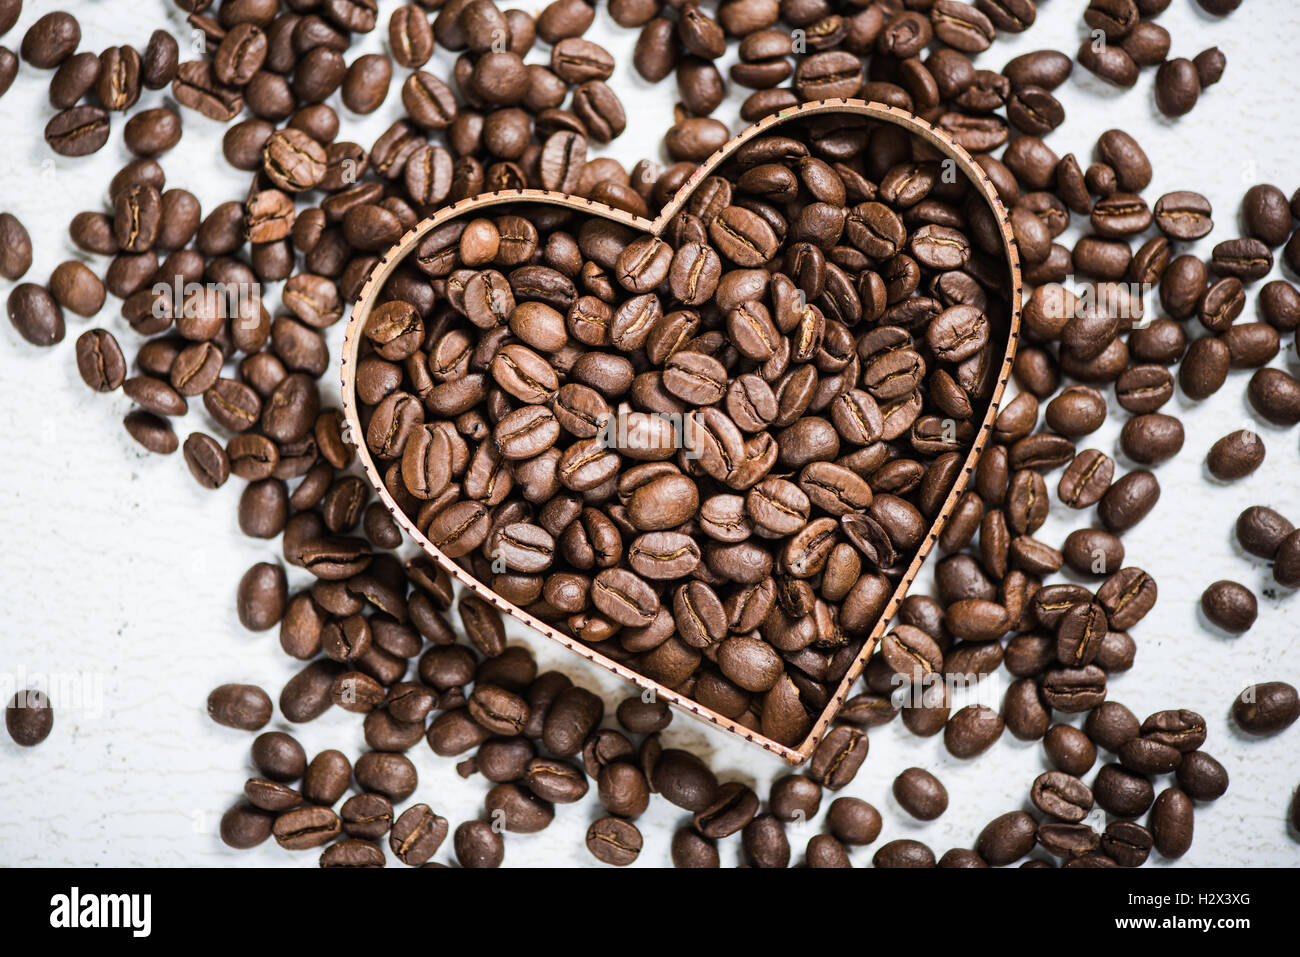 Heart shape symbol with roasted aromatic coffee beans stock photo heart shape symbol with roasted aromatic coffee beans biocorpaavc Image collections